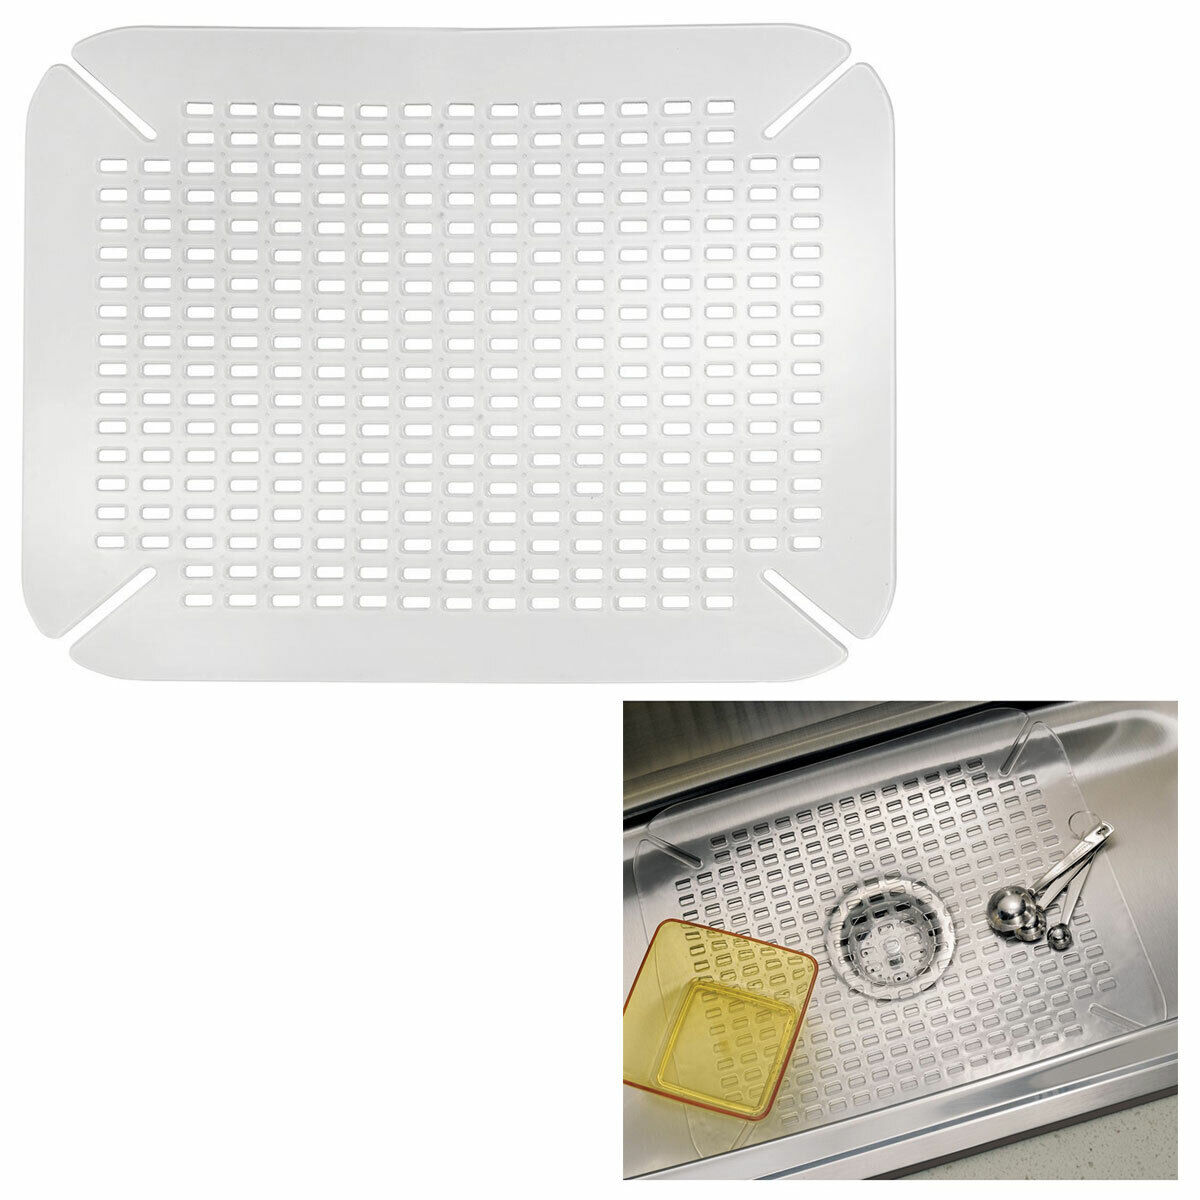 Adjustable Contour Size Kitchen Sink Dish Drying Protector Mat, Clear